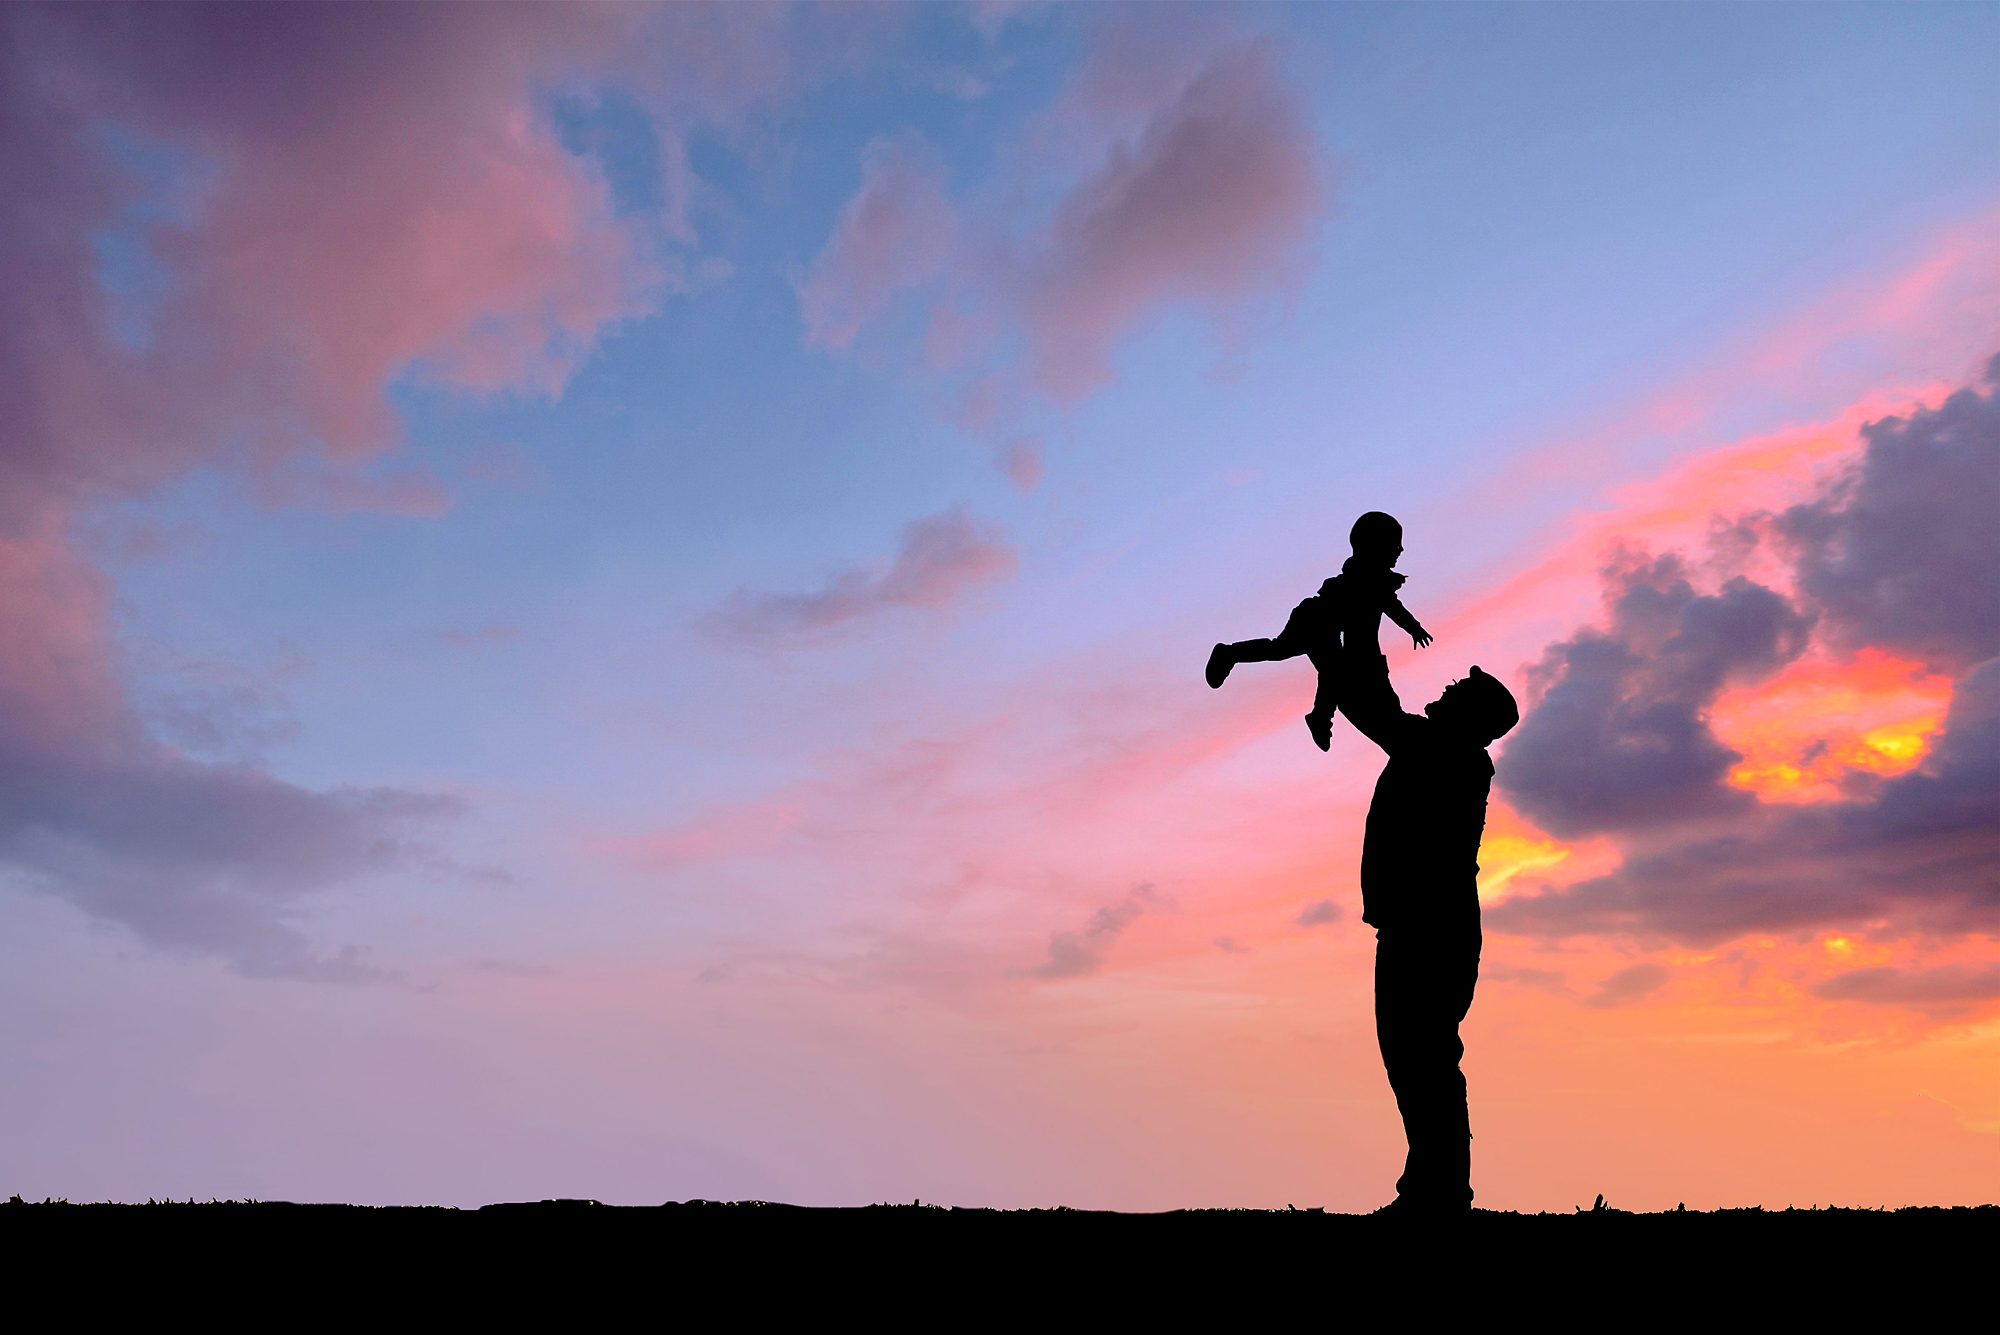 st-louis-family-photographer-mini-session-sunset-silhouette-with-dad-and-baby.jpg